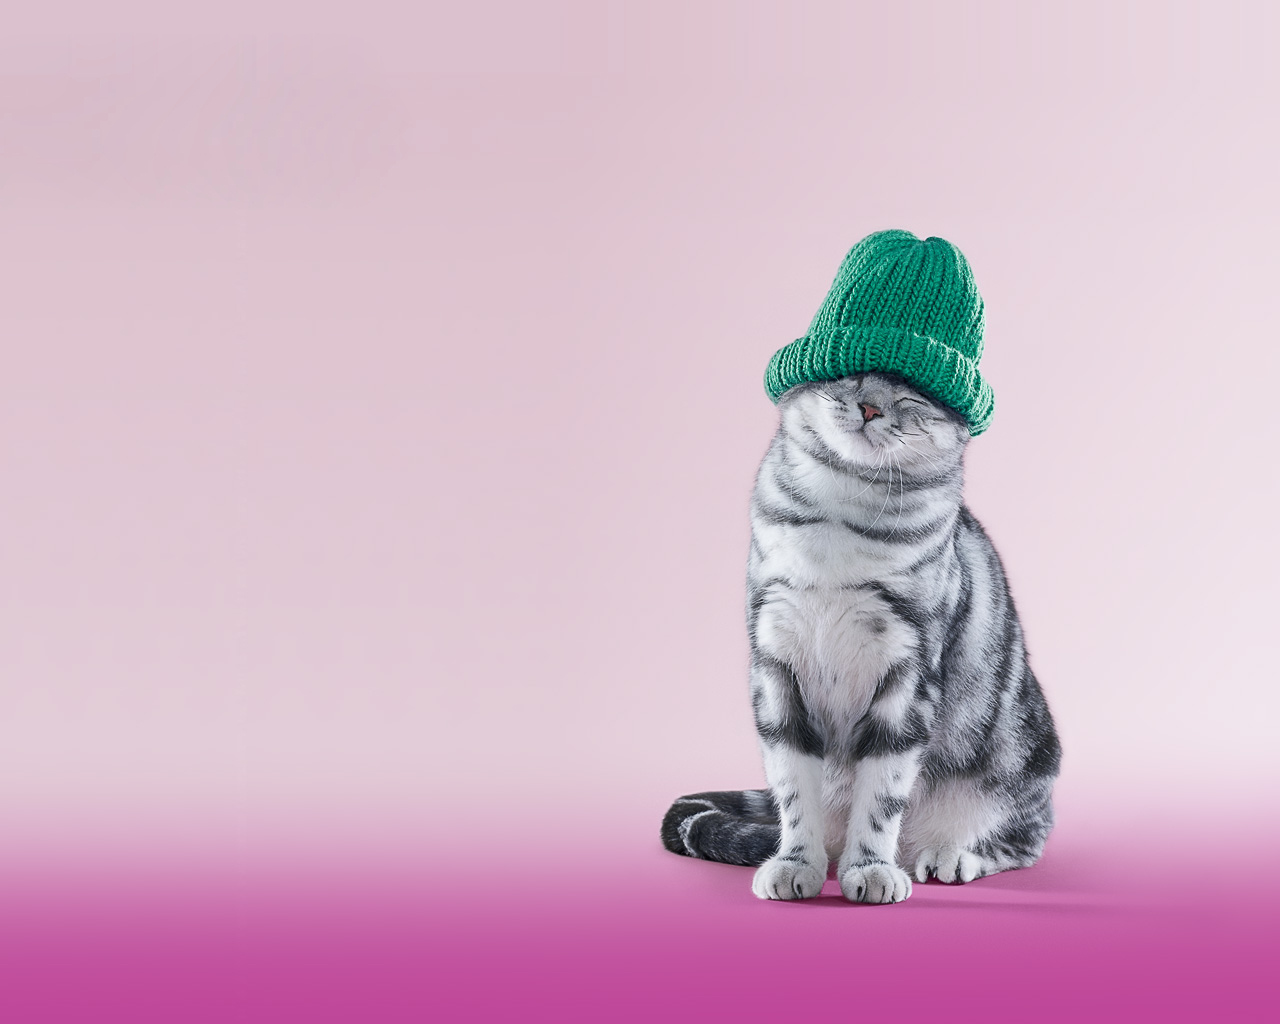 12456 download wallpaper Funny, Animals, People, Cats, Whiskas screensavers and pictures for free